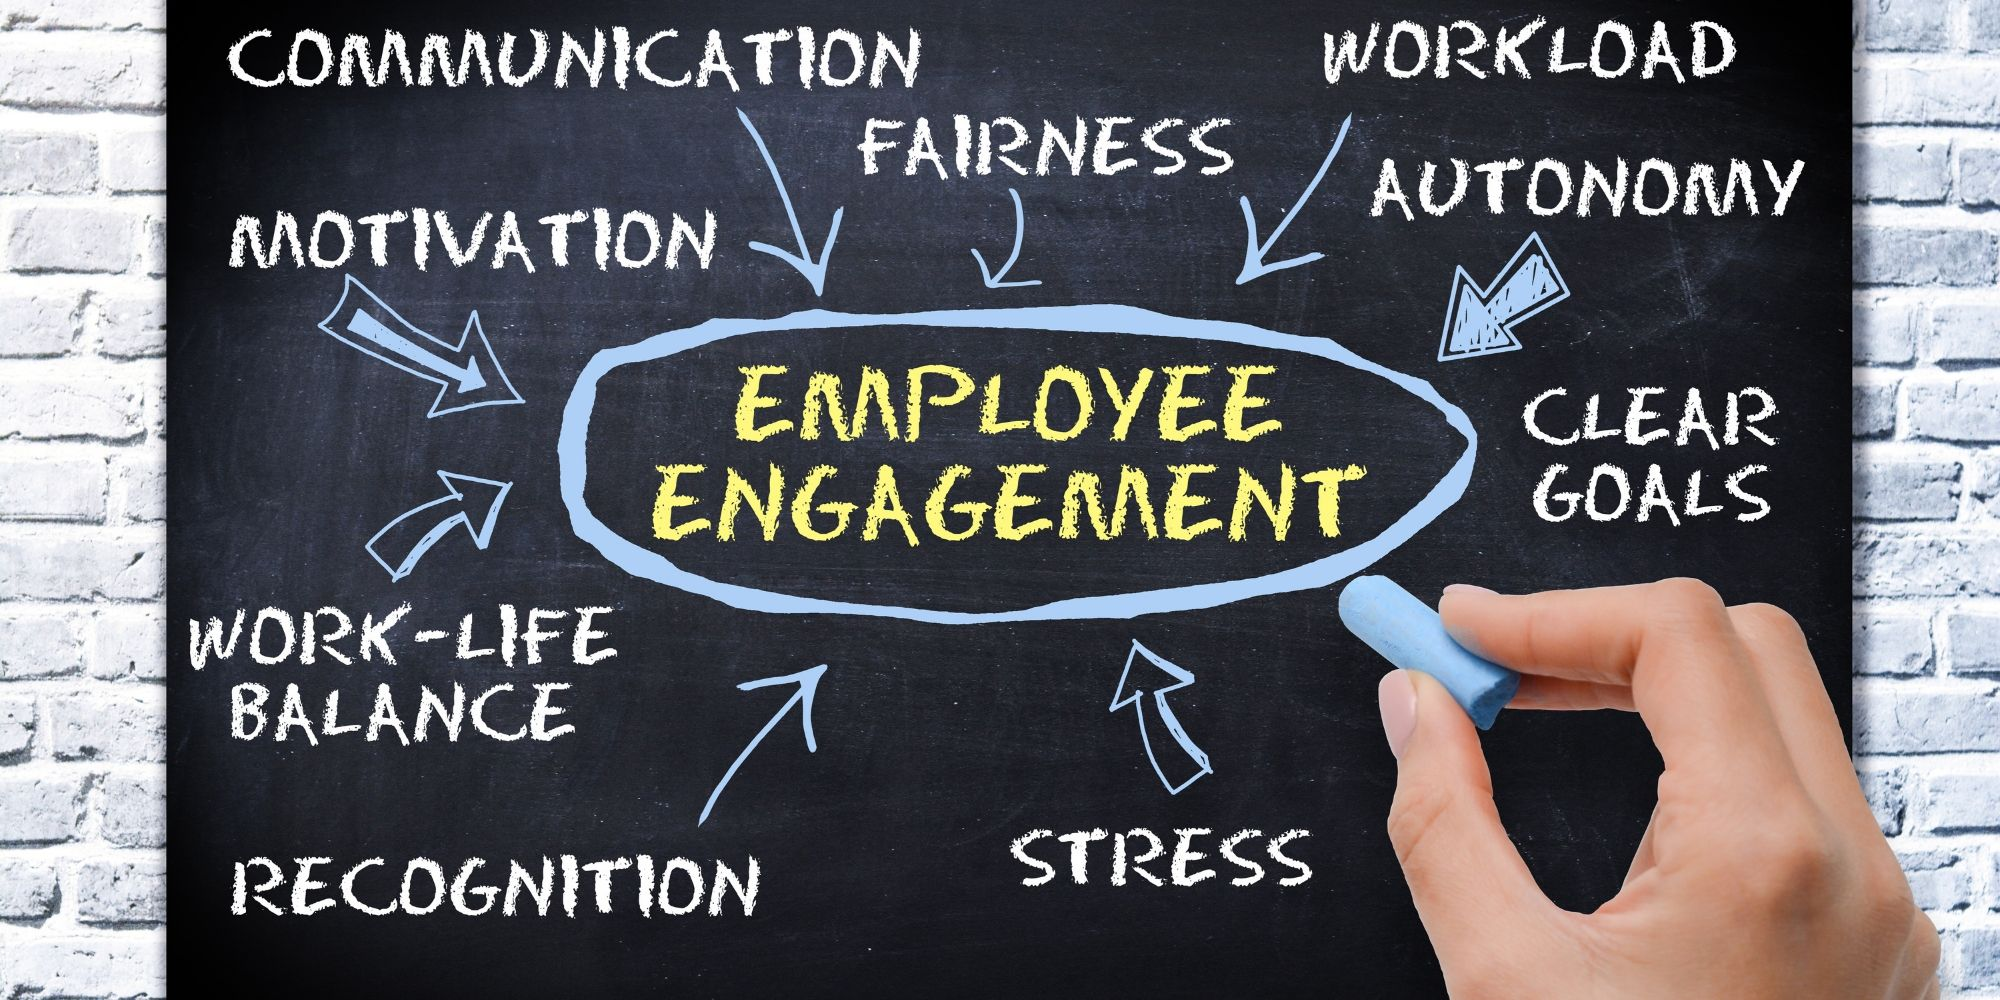 Employee Engagement website